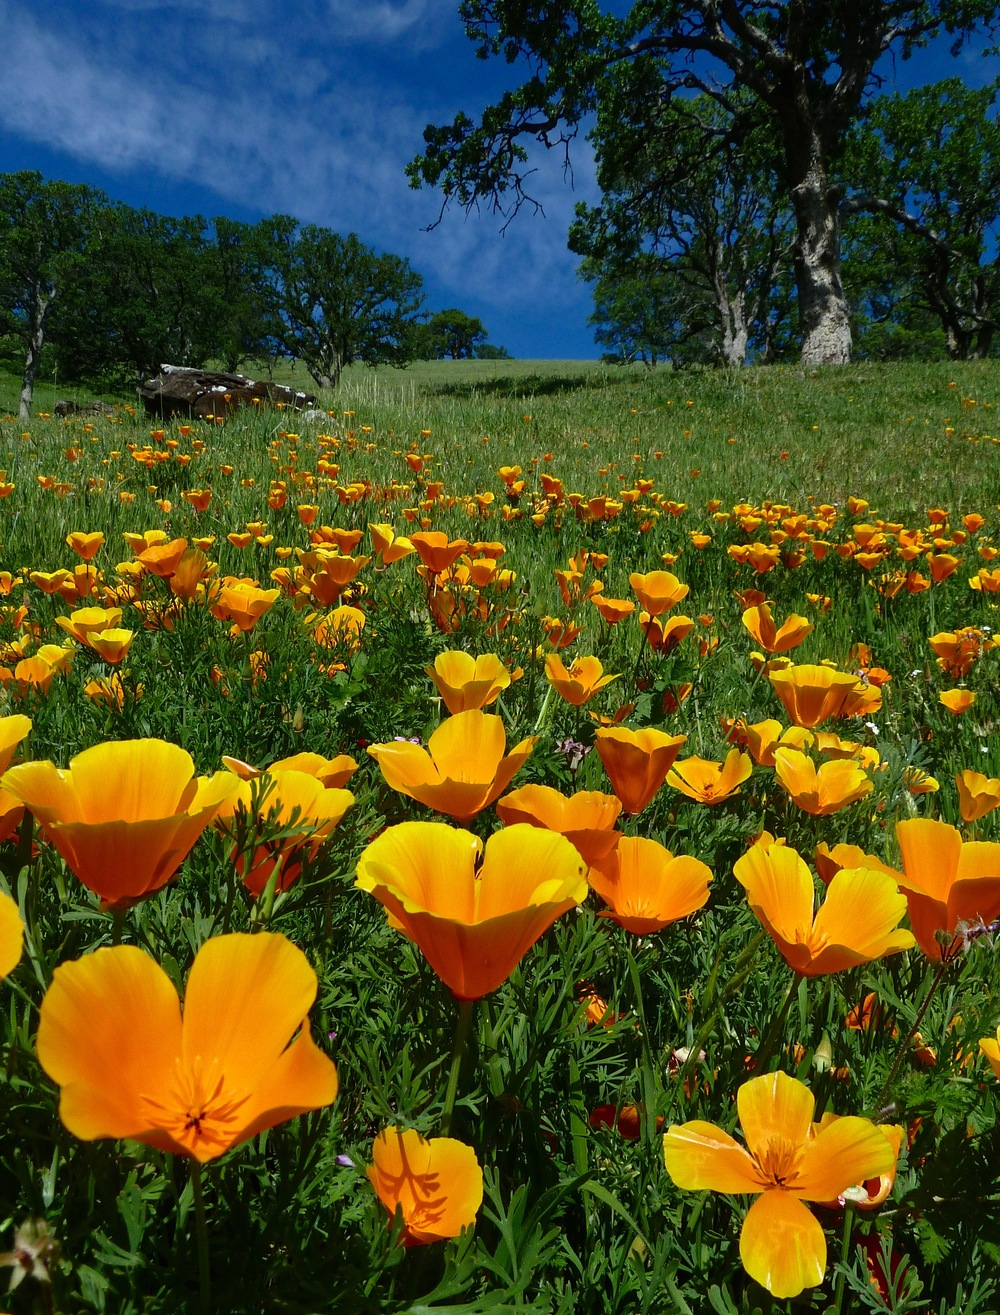 California orange poppies in Hardy Canyon.